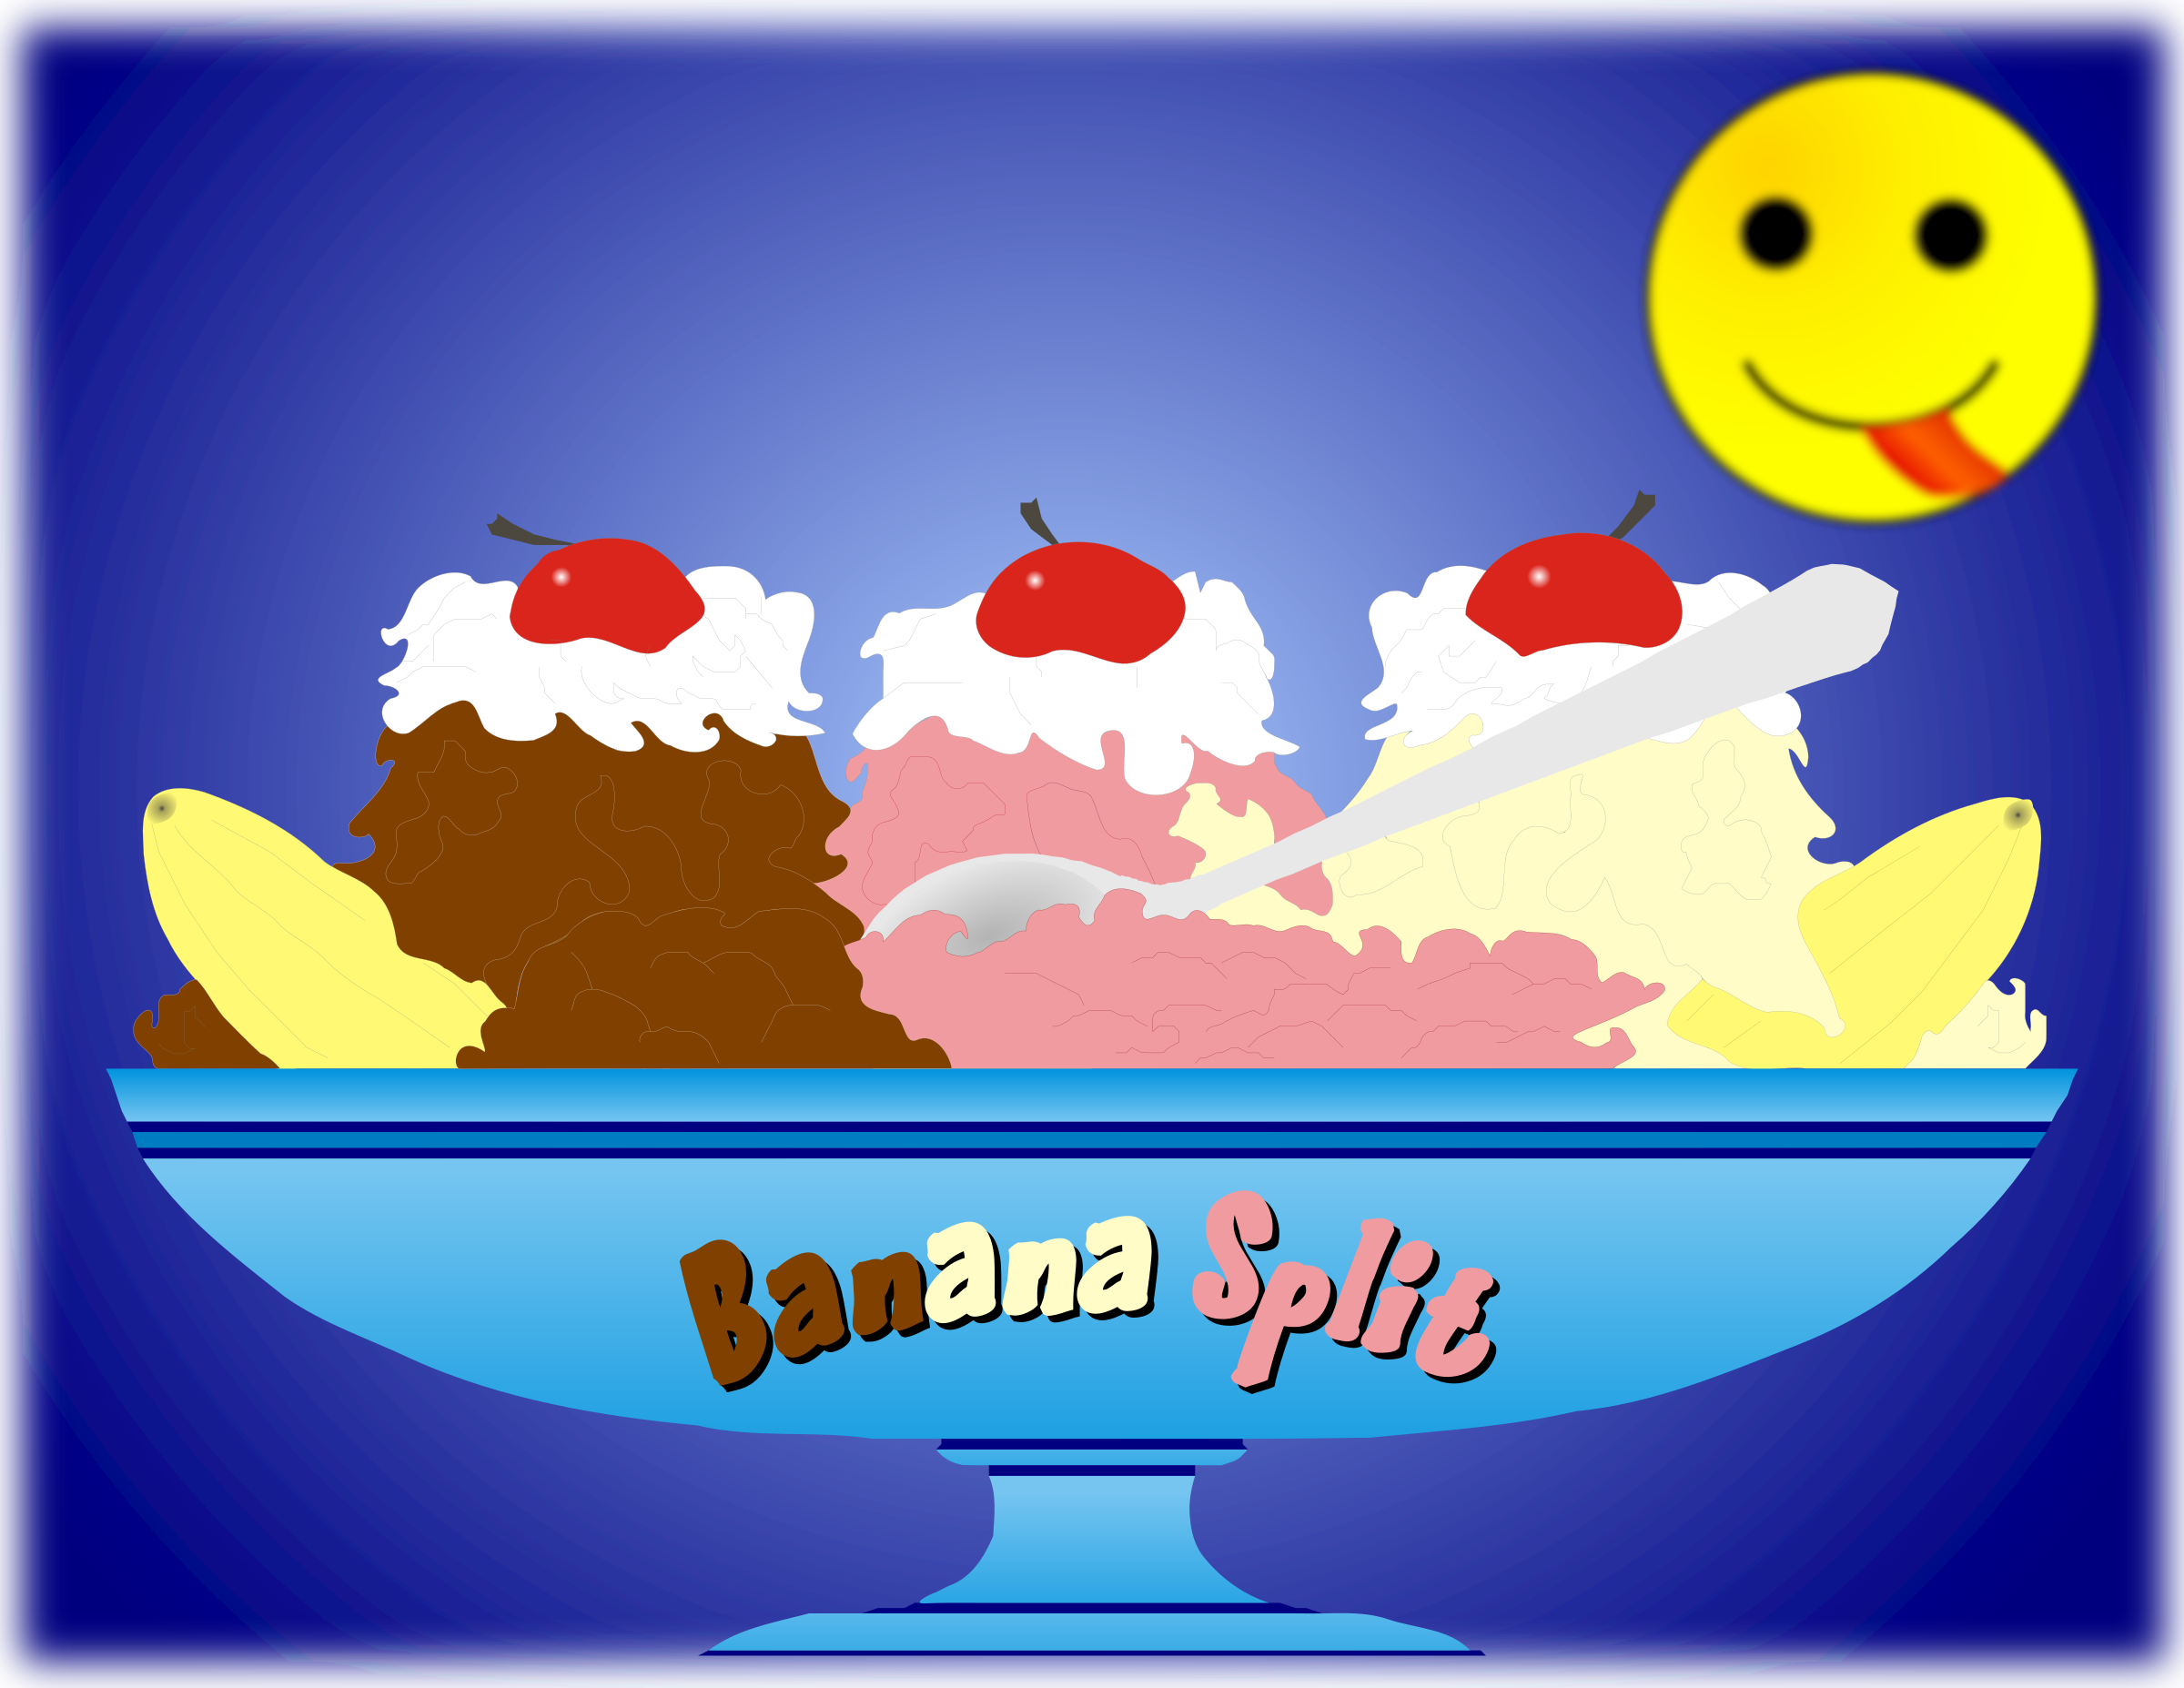 BANANA SPLIT by charner1963